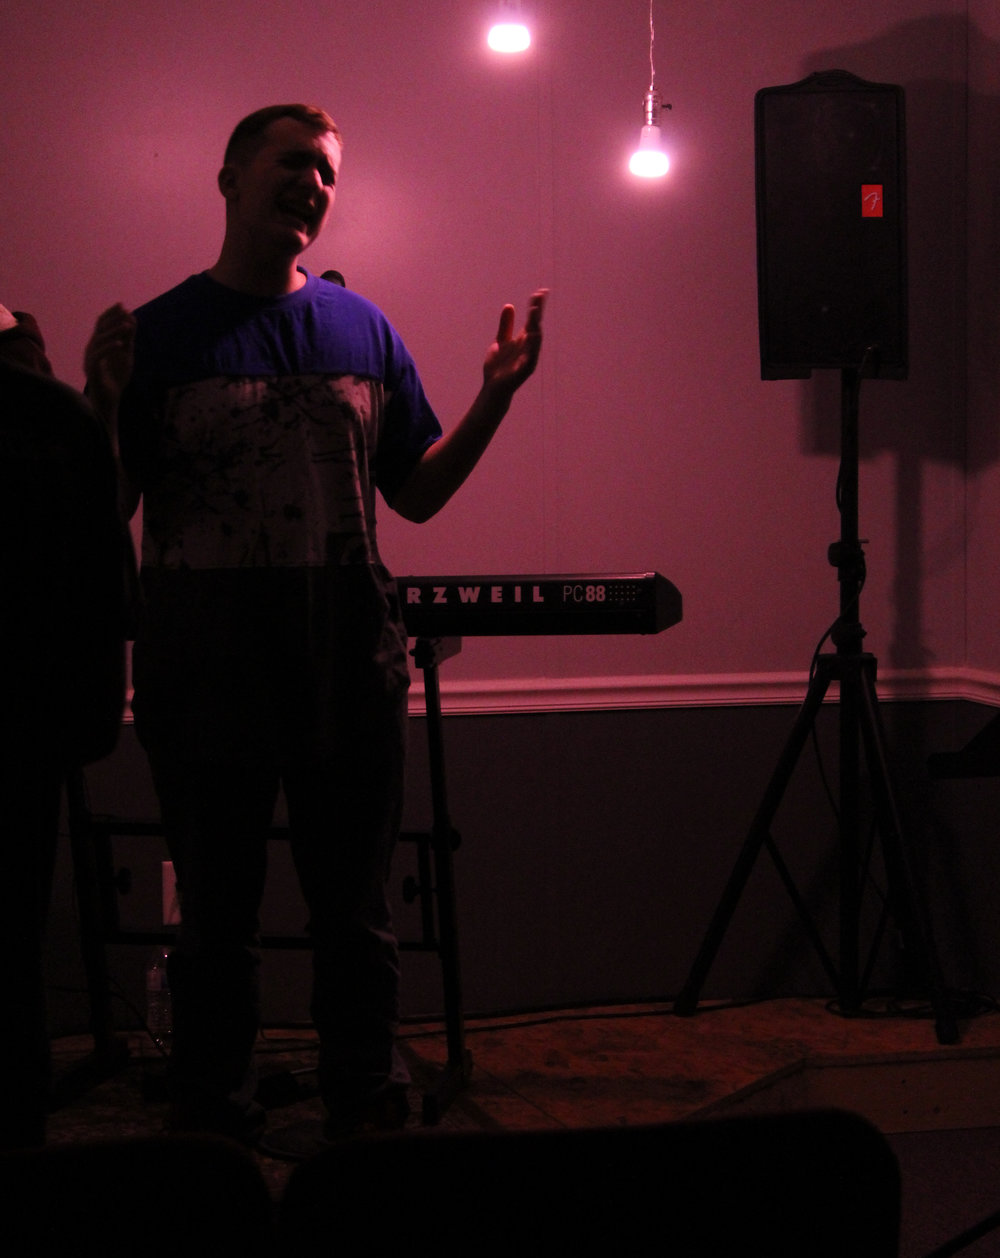 In the White Flag Youth Ministry, ranging from ages 12-18, students are encouraged to seek after God daily and are taught biblical and relatable material week after week. Pictured here is Noah Milholan singing on stage and worshipping God.